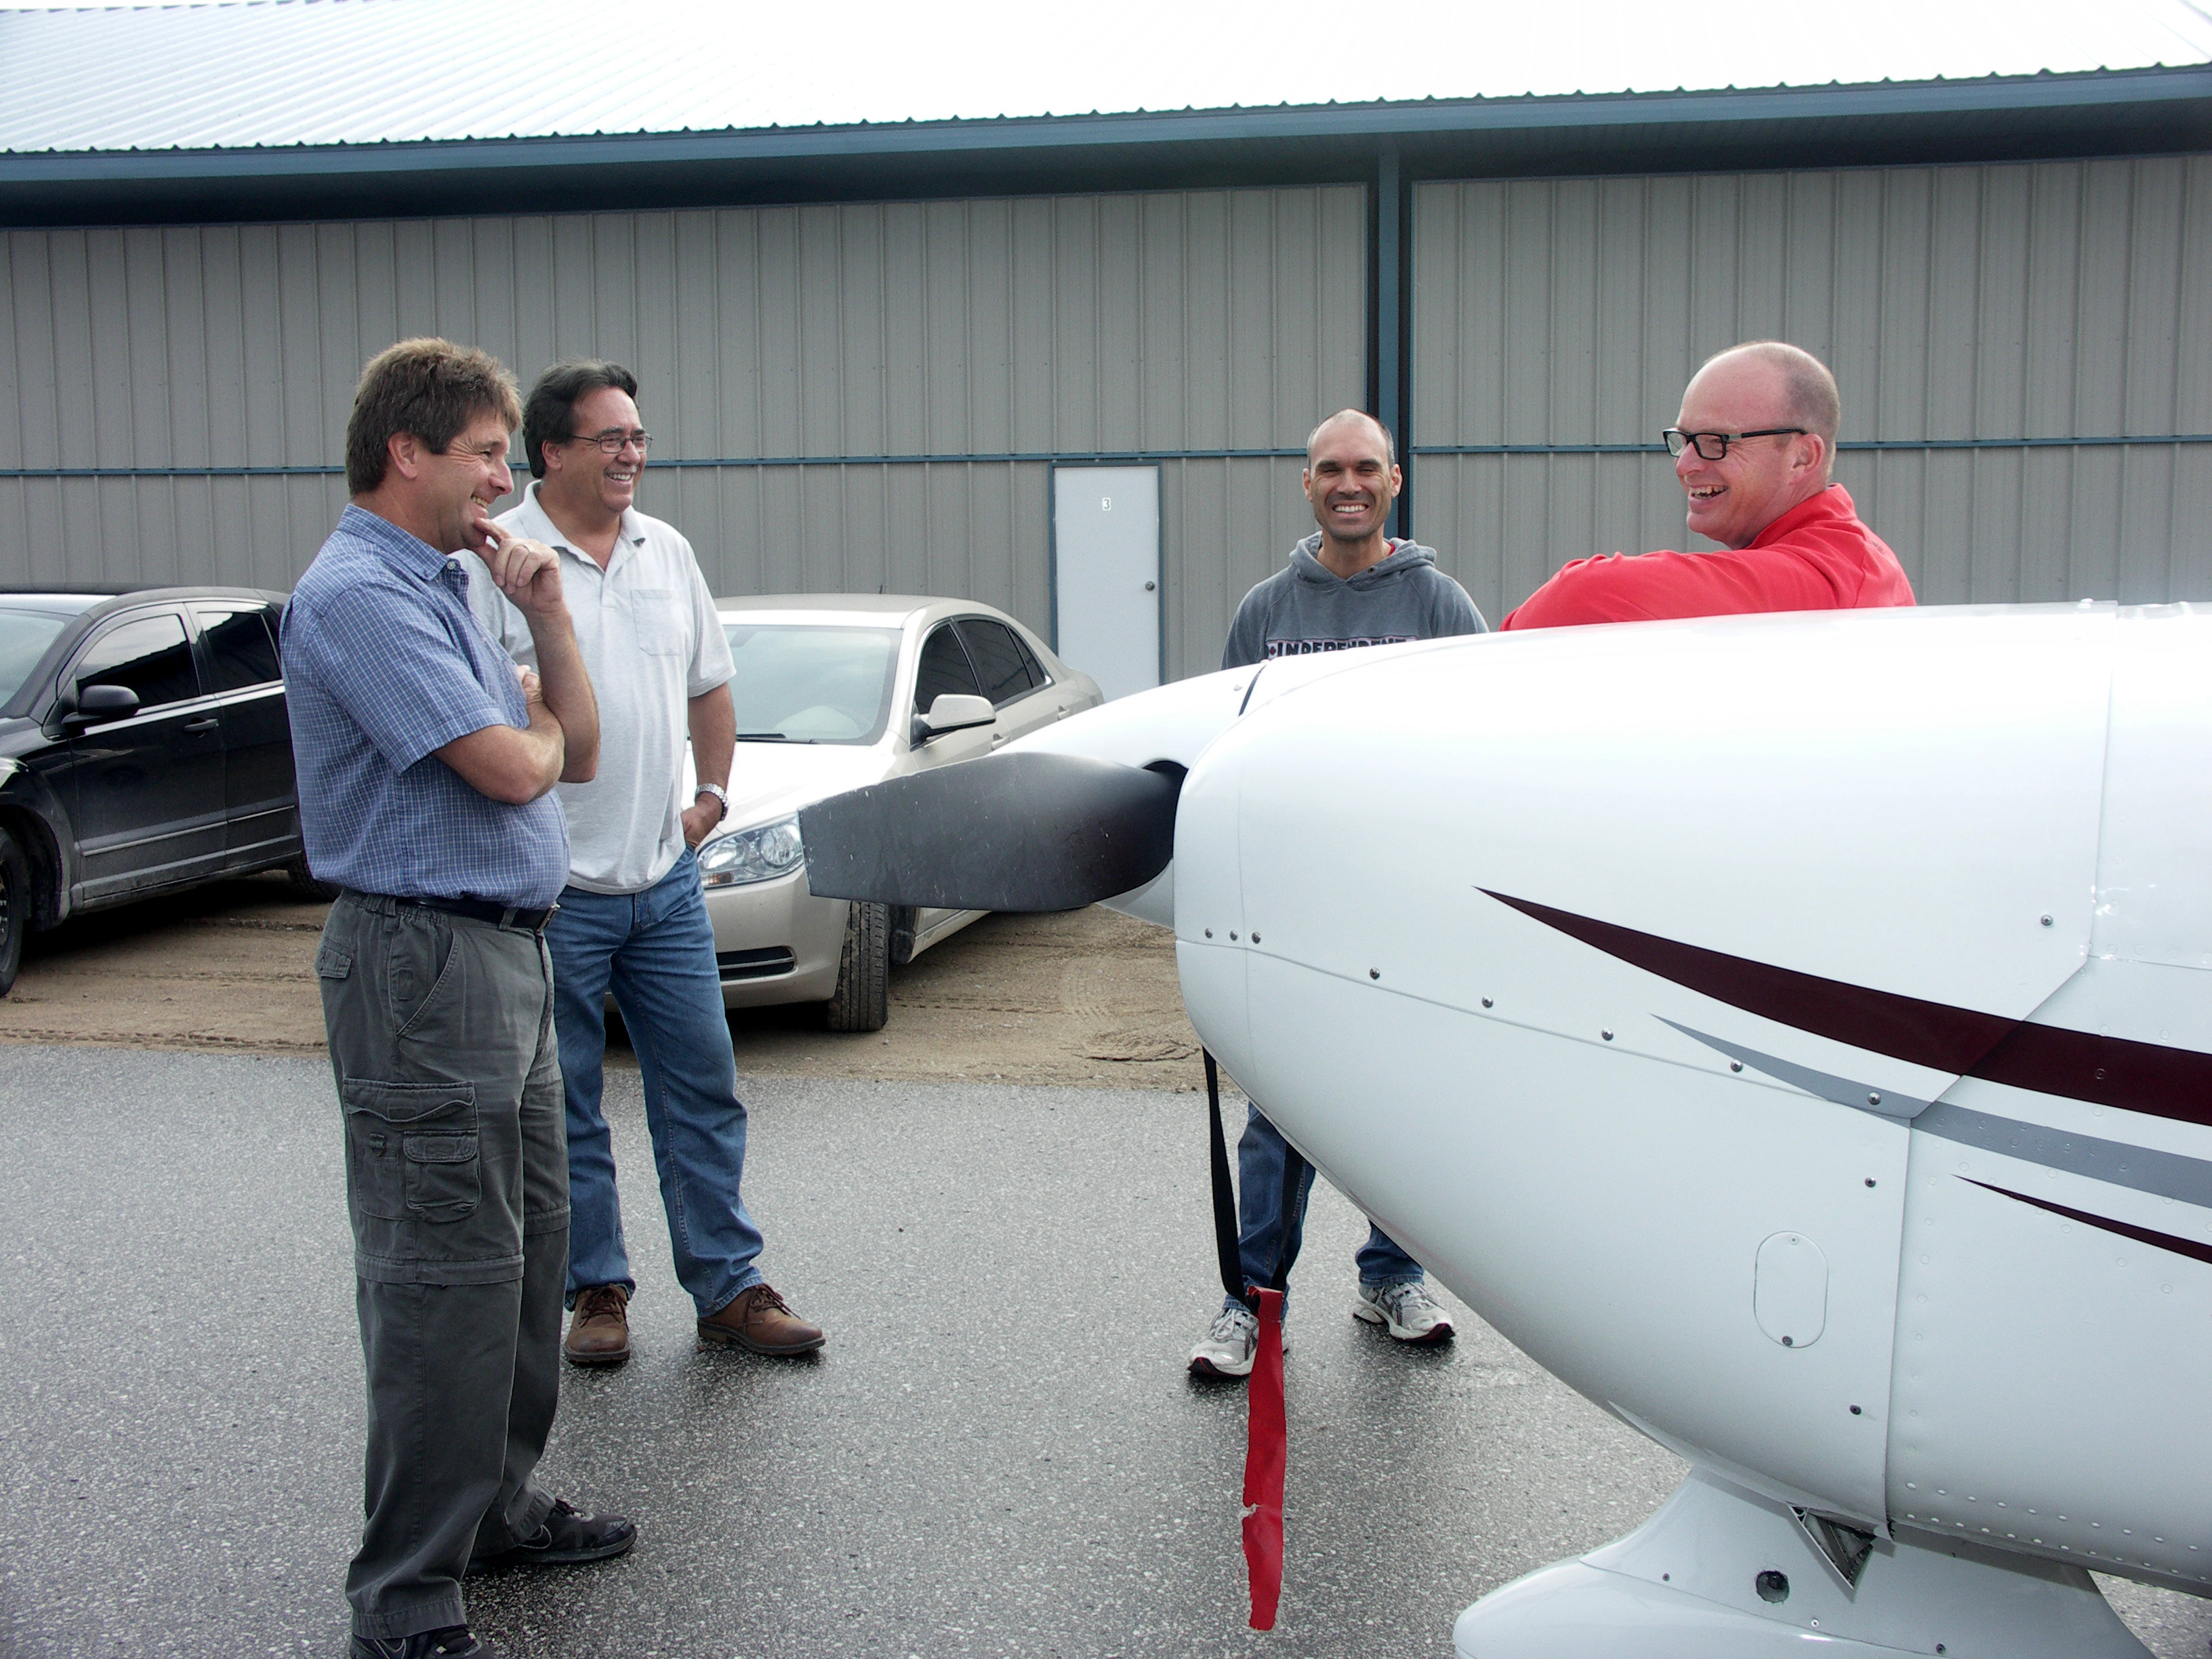 Several of our flying members. Discussing the finer points of flying the Cardinal. Owen, Paul, Chris and Steve M